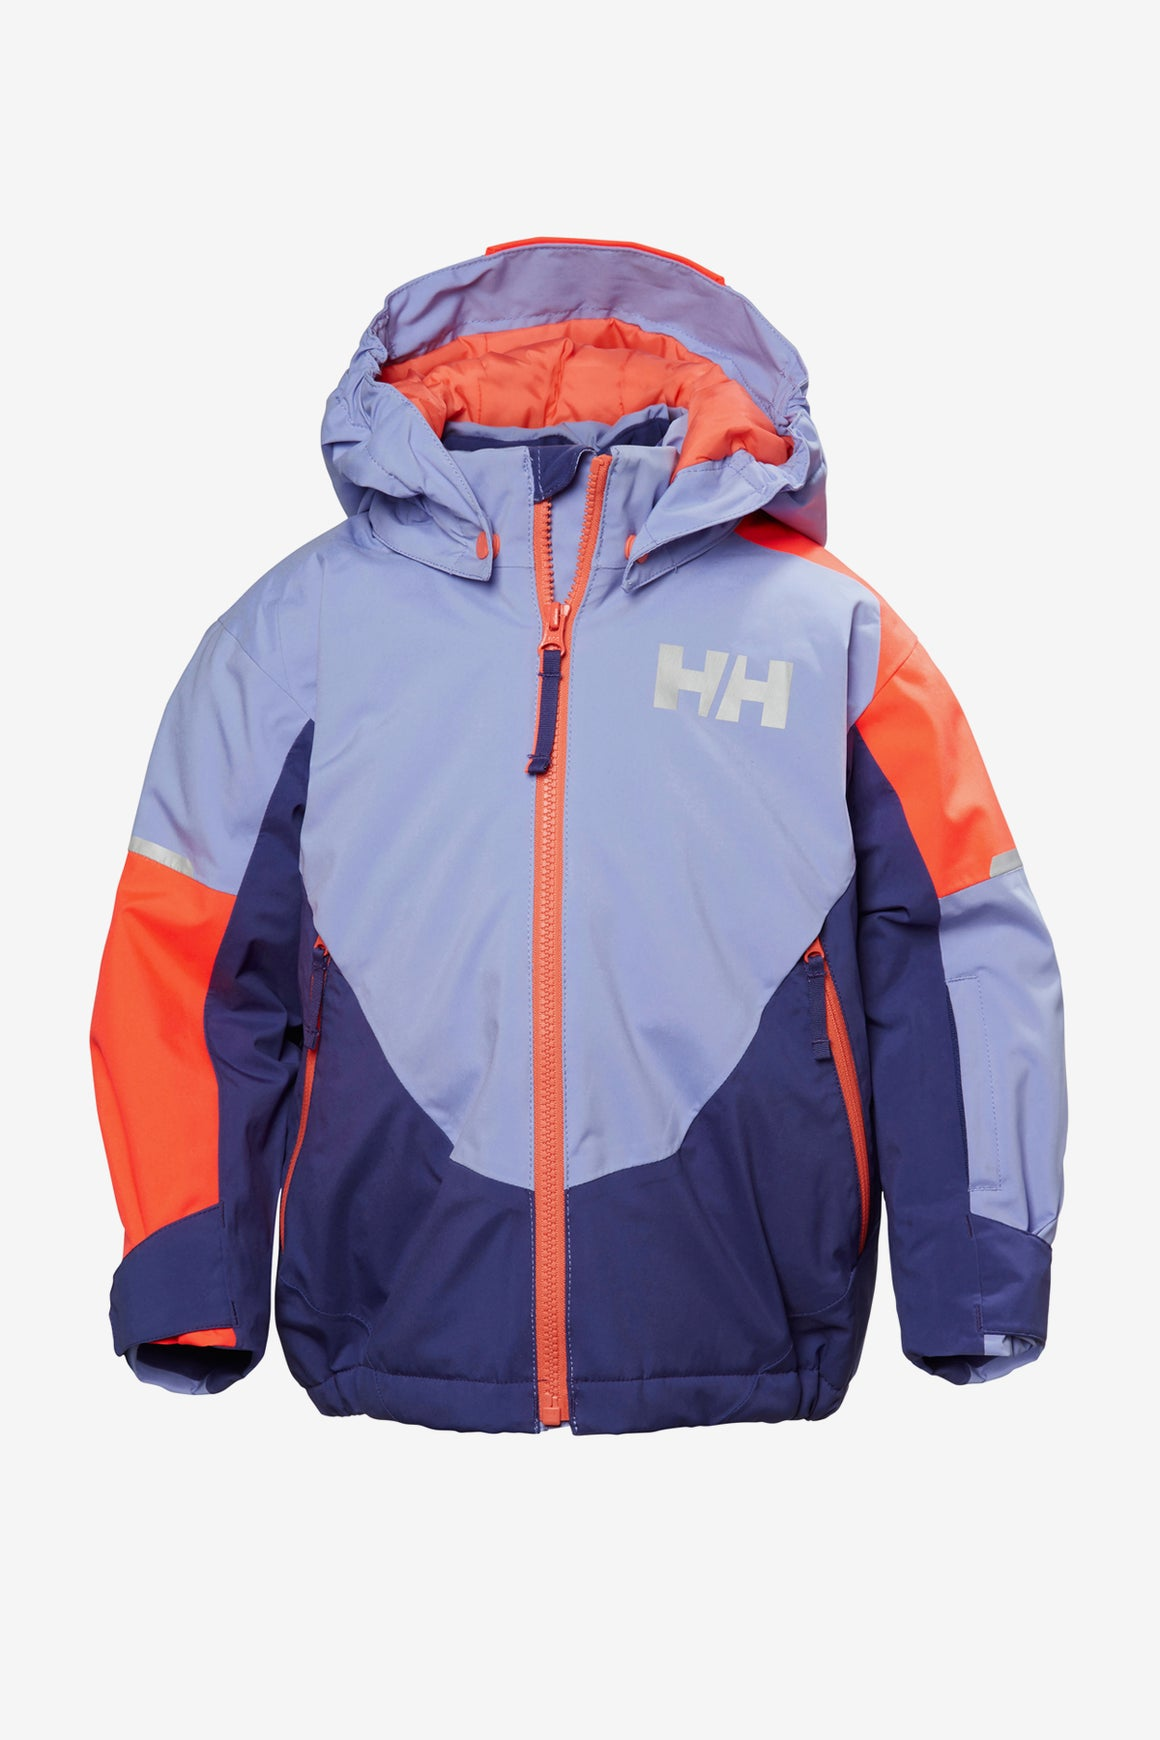 Helly Hansen Rider Insulated Jacket - Lilac